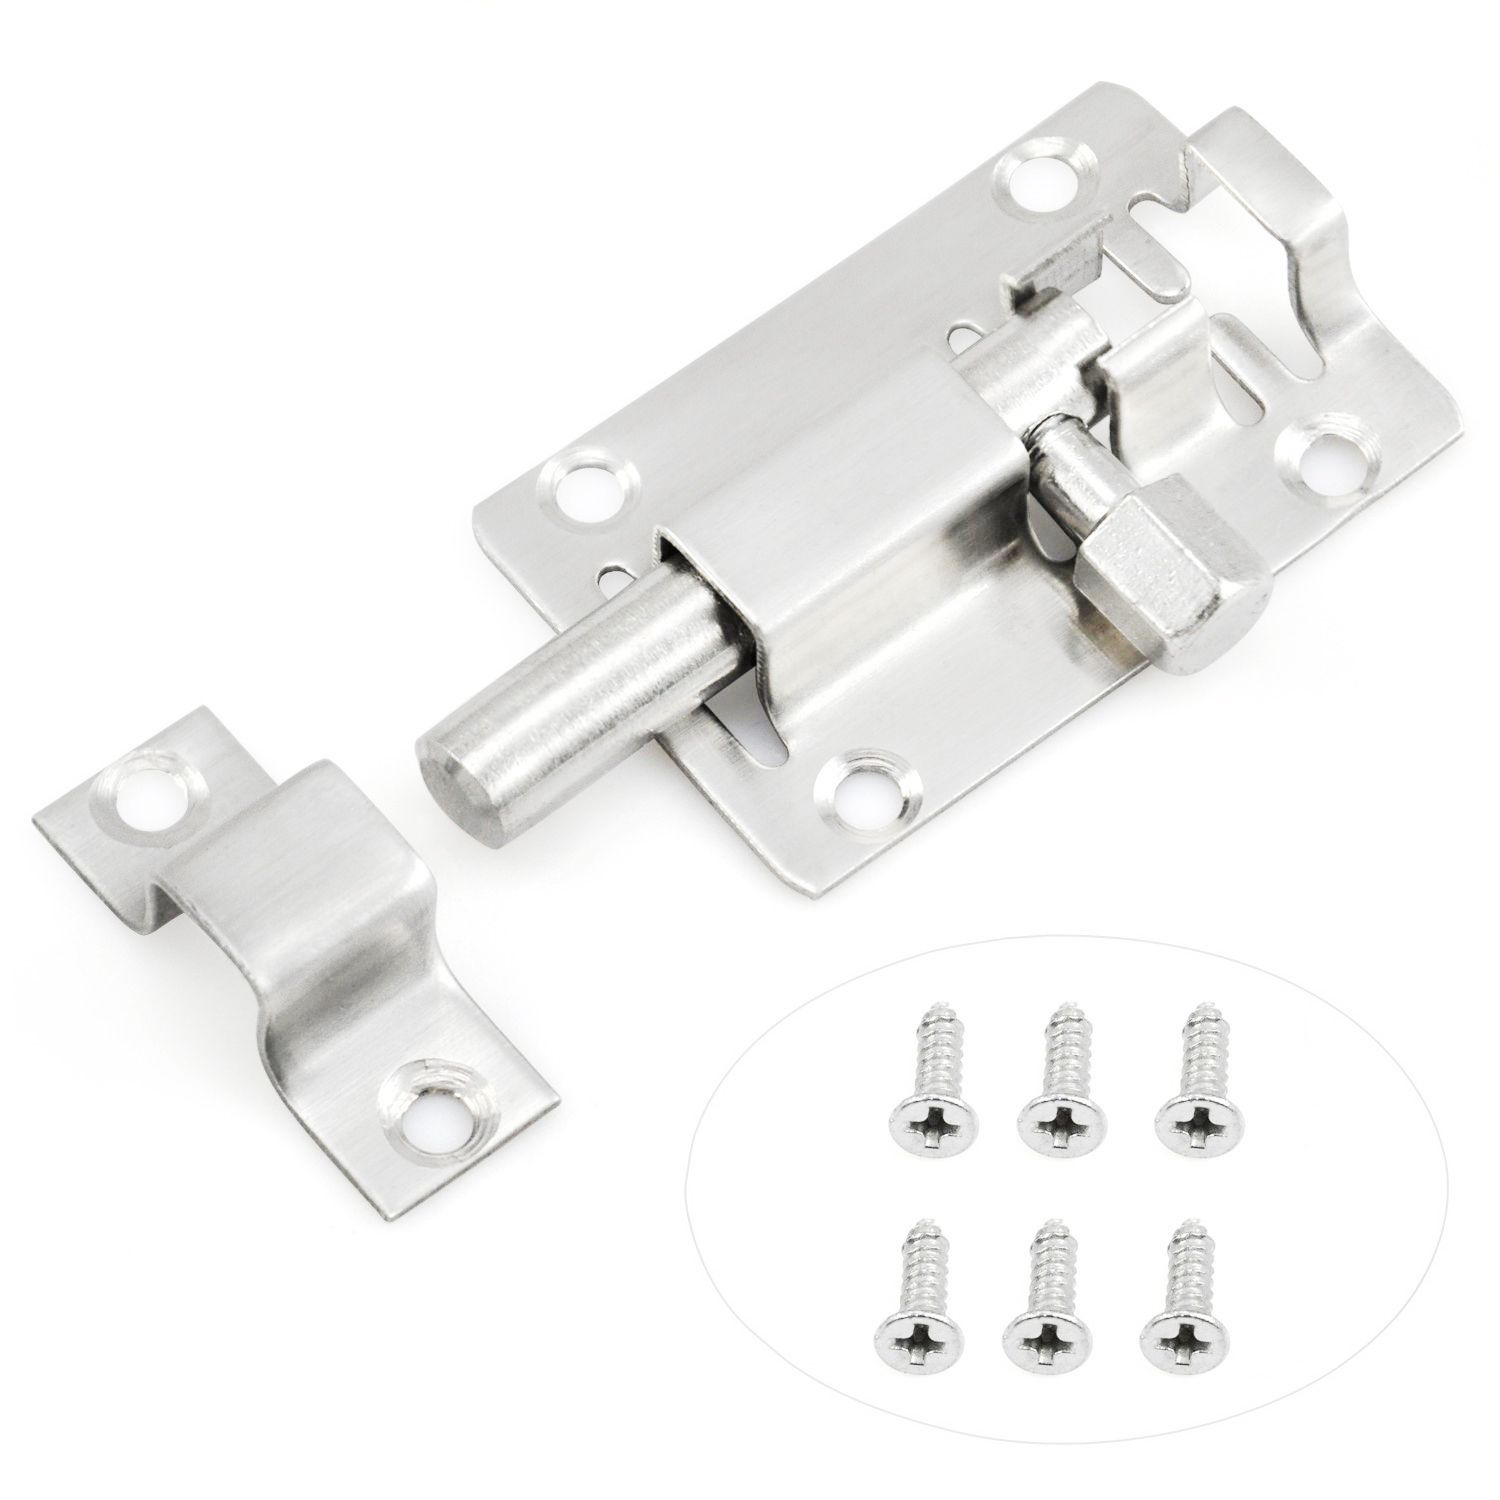 WSFS Hot 13mm Long Door Lock Slide Bolt Stainless Steel Door Latch Bolt Latch For Bathroom, Toilet, Shed, Bedroom, Furniture